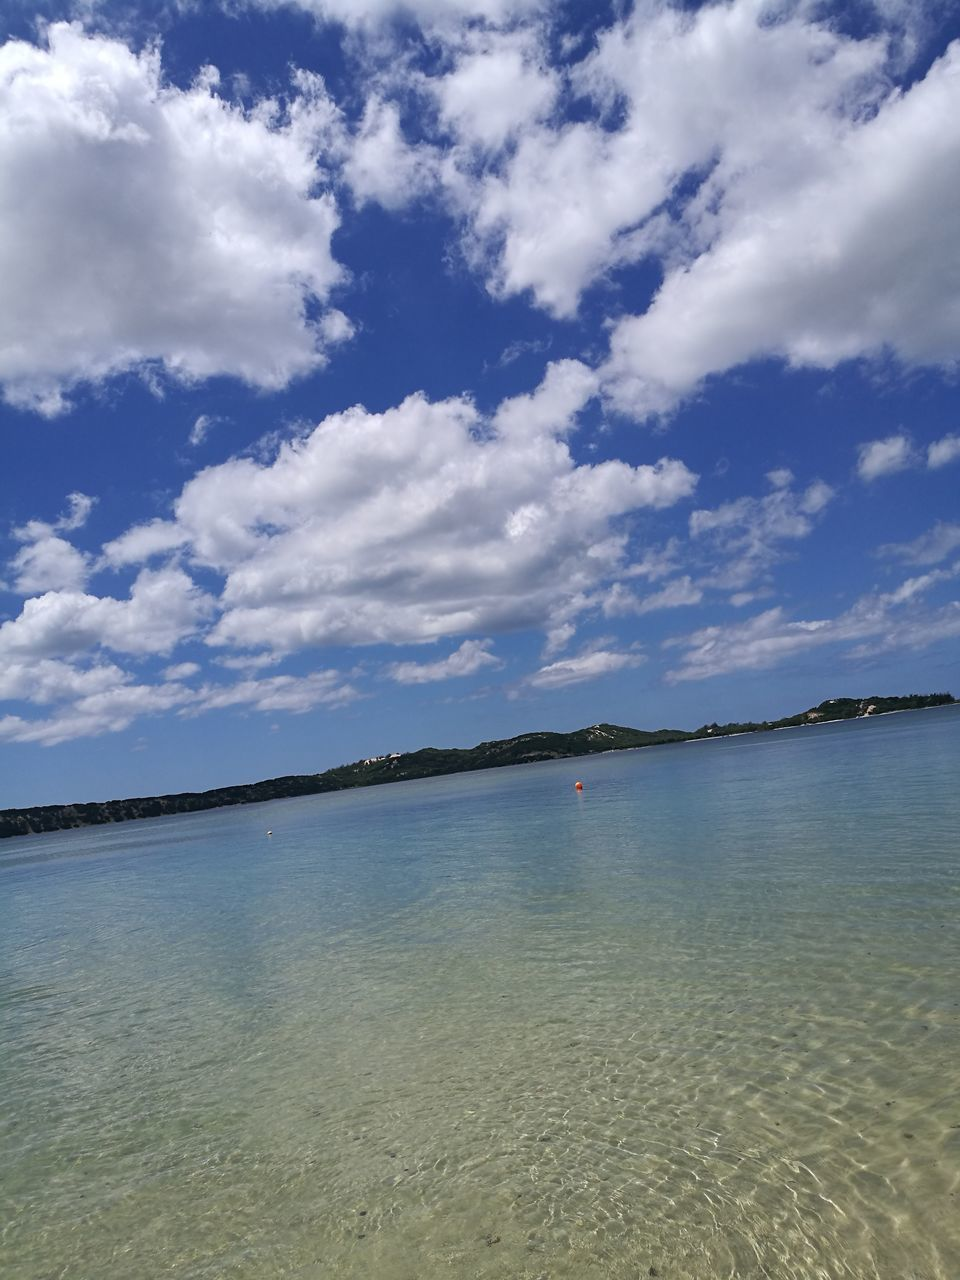 sky, tranquility, cloud - sky, scenics, tranquil scene, water, beauty in nature, nature, sea, outdoors, day, no people, beach